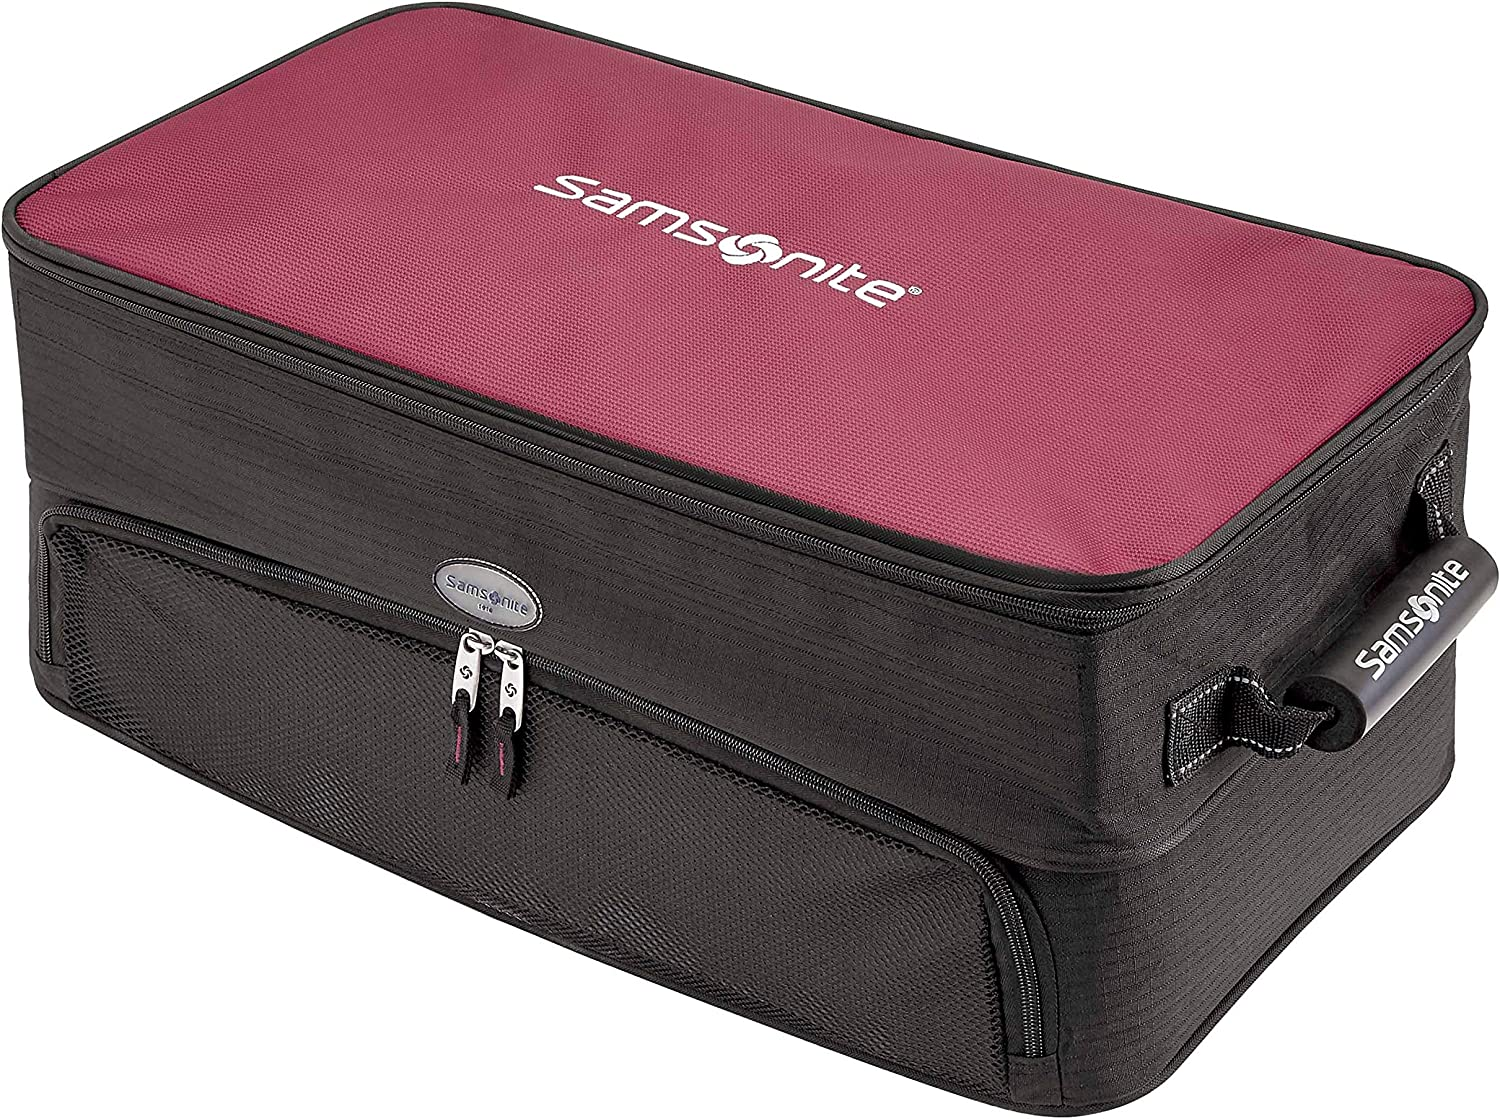 Samsonite Expanding Golf Trunk Locker Organizer